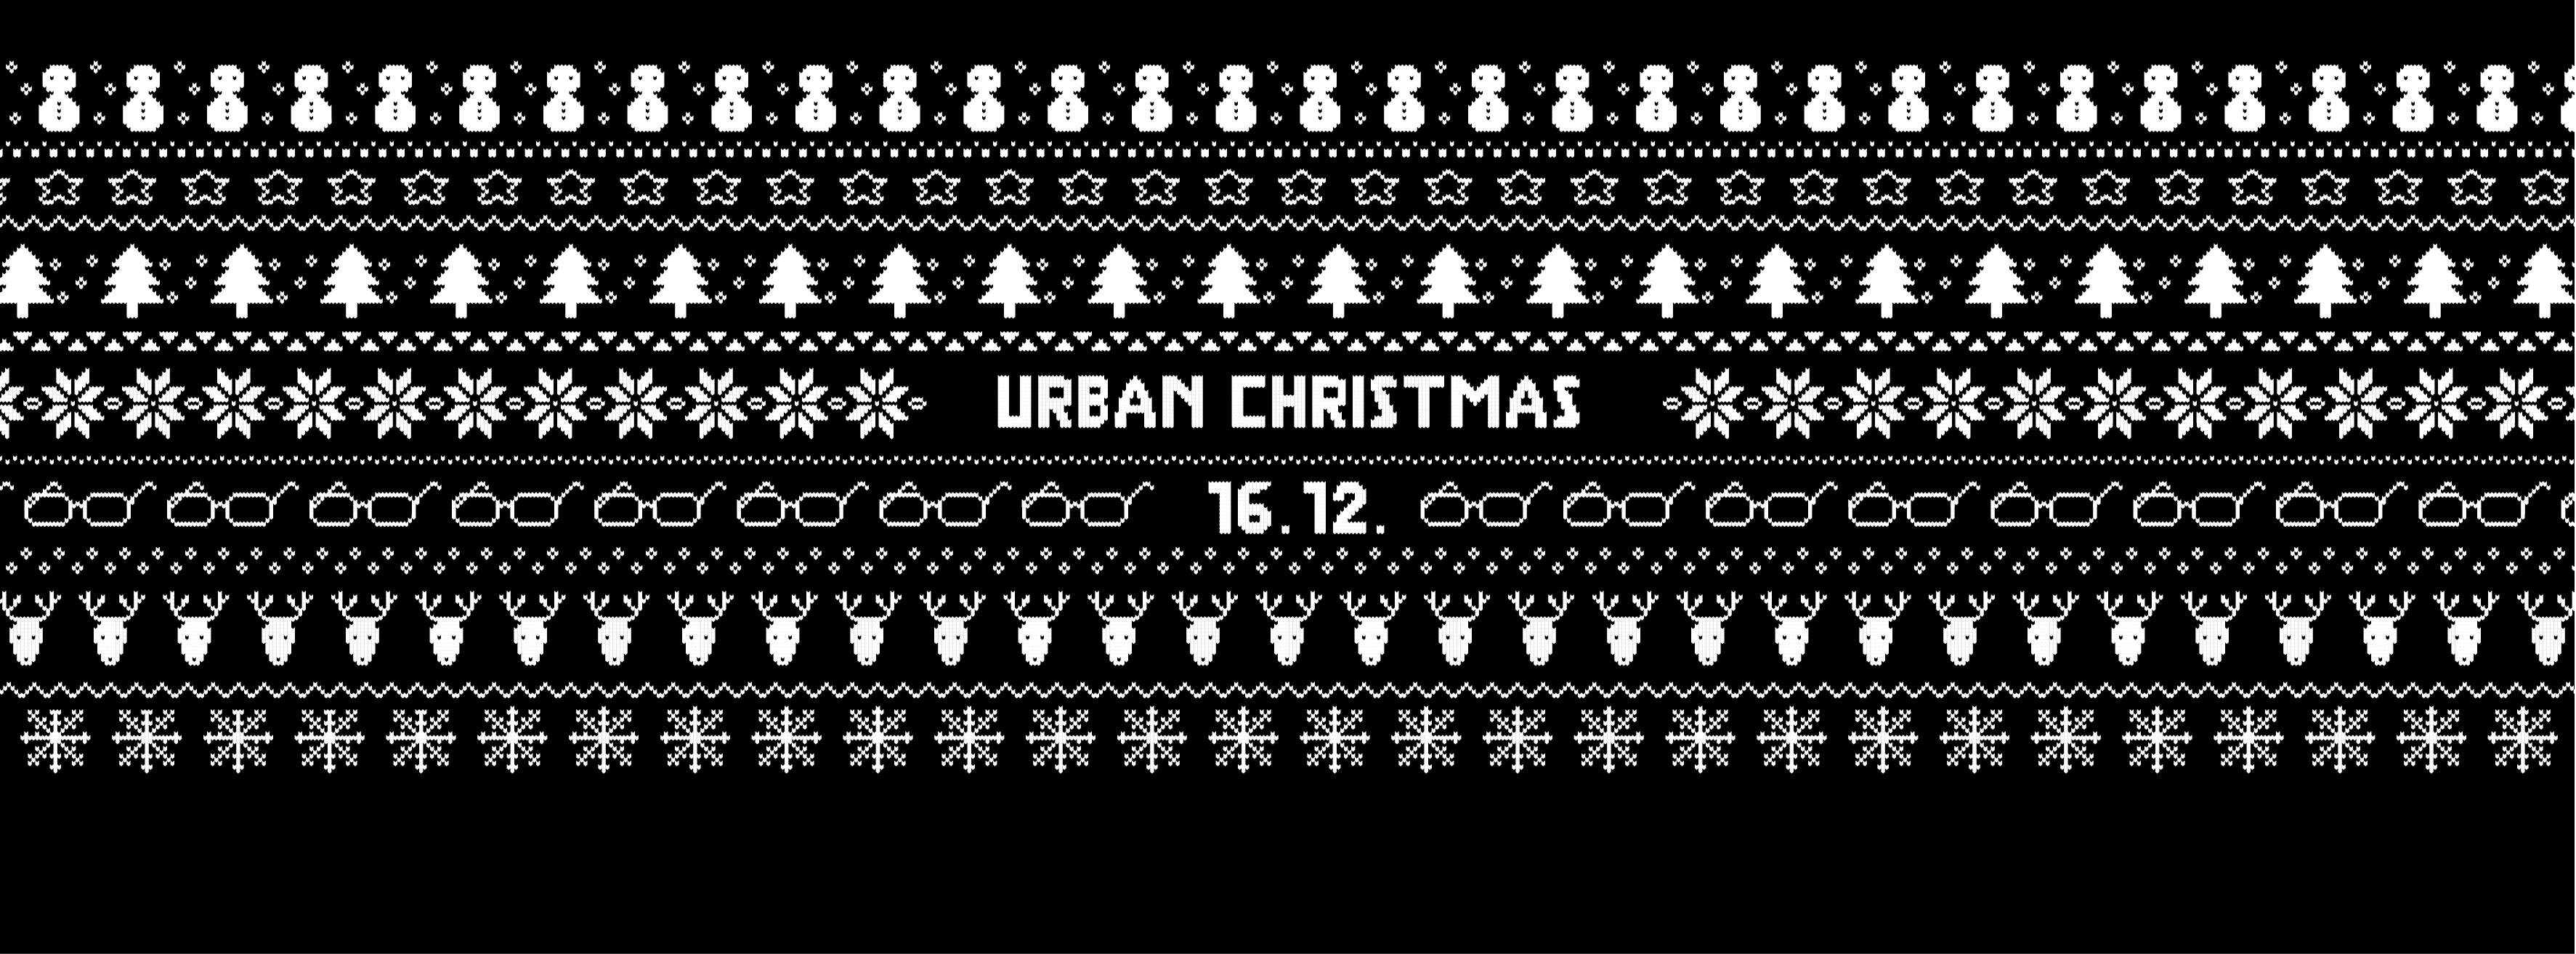 URBAN CHRISTMAS MARKET @ ic! berlin Flagship Store